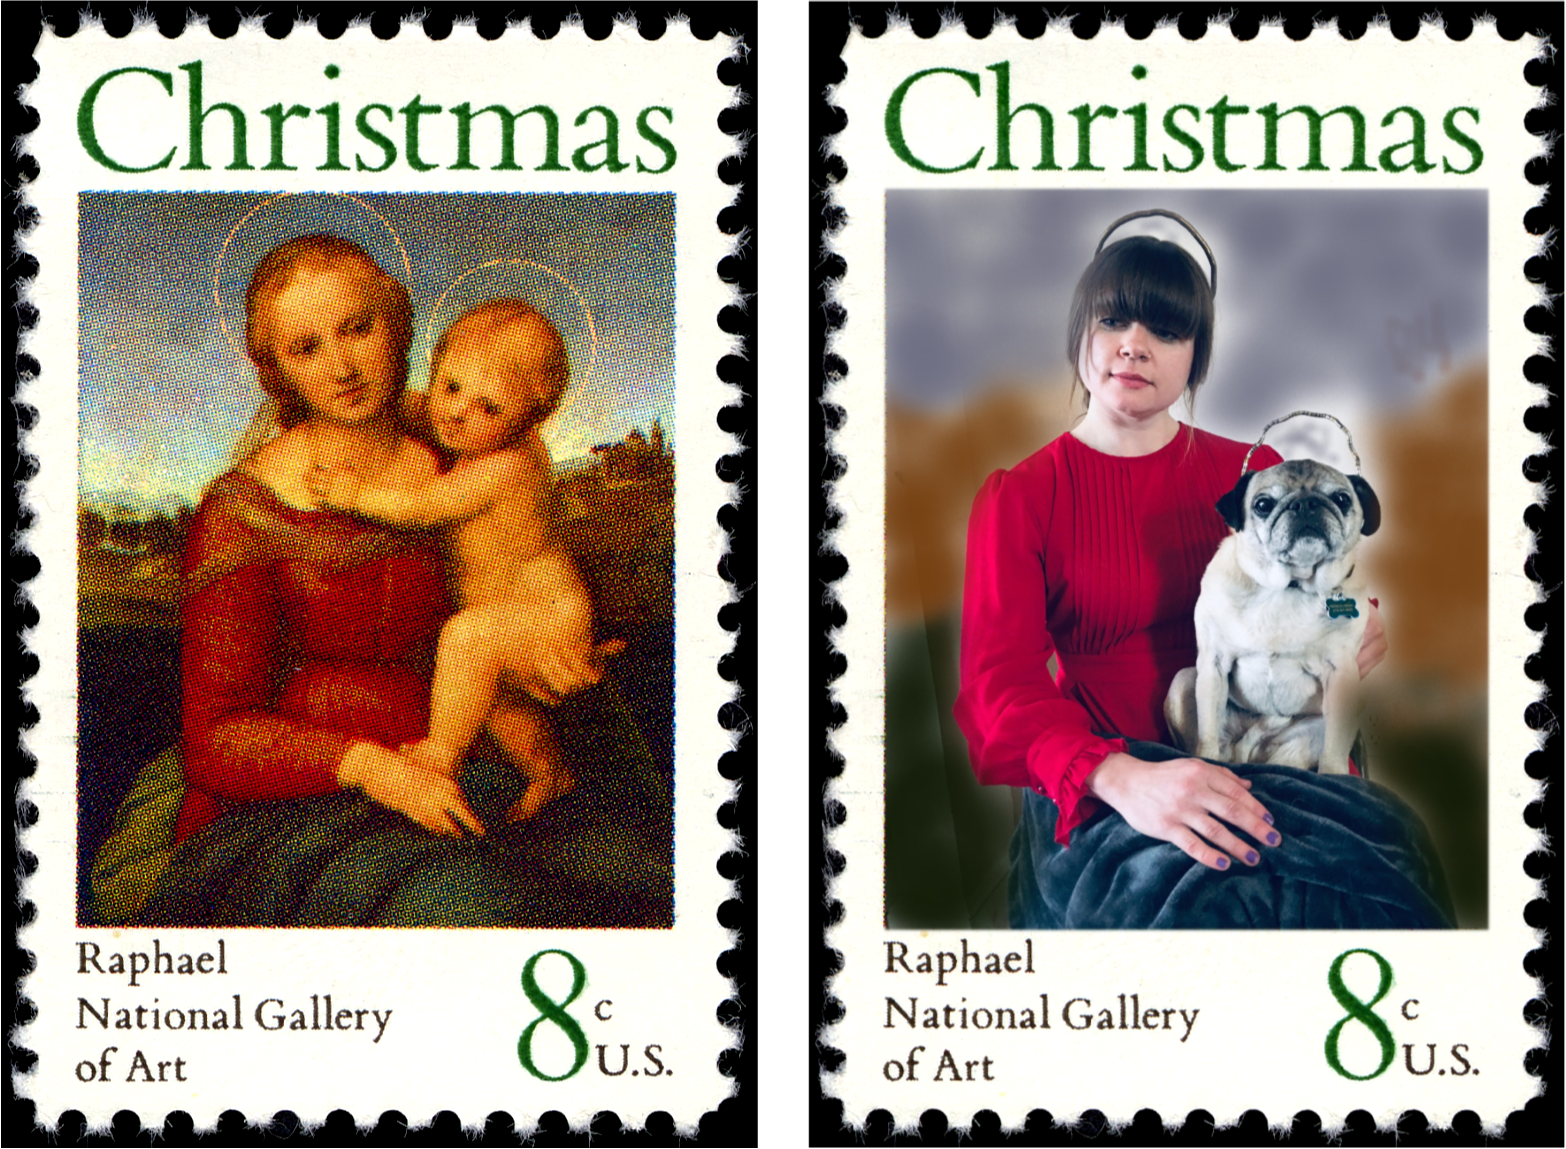 Two similar postage stamps side by side. Left stamp depicts painting of woman with halo holding baby with halo. Right stamp depicts photograph of woman with halo holding dog with halo.